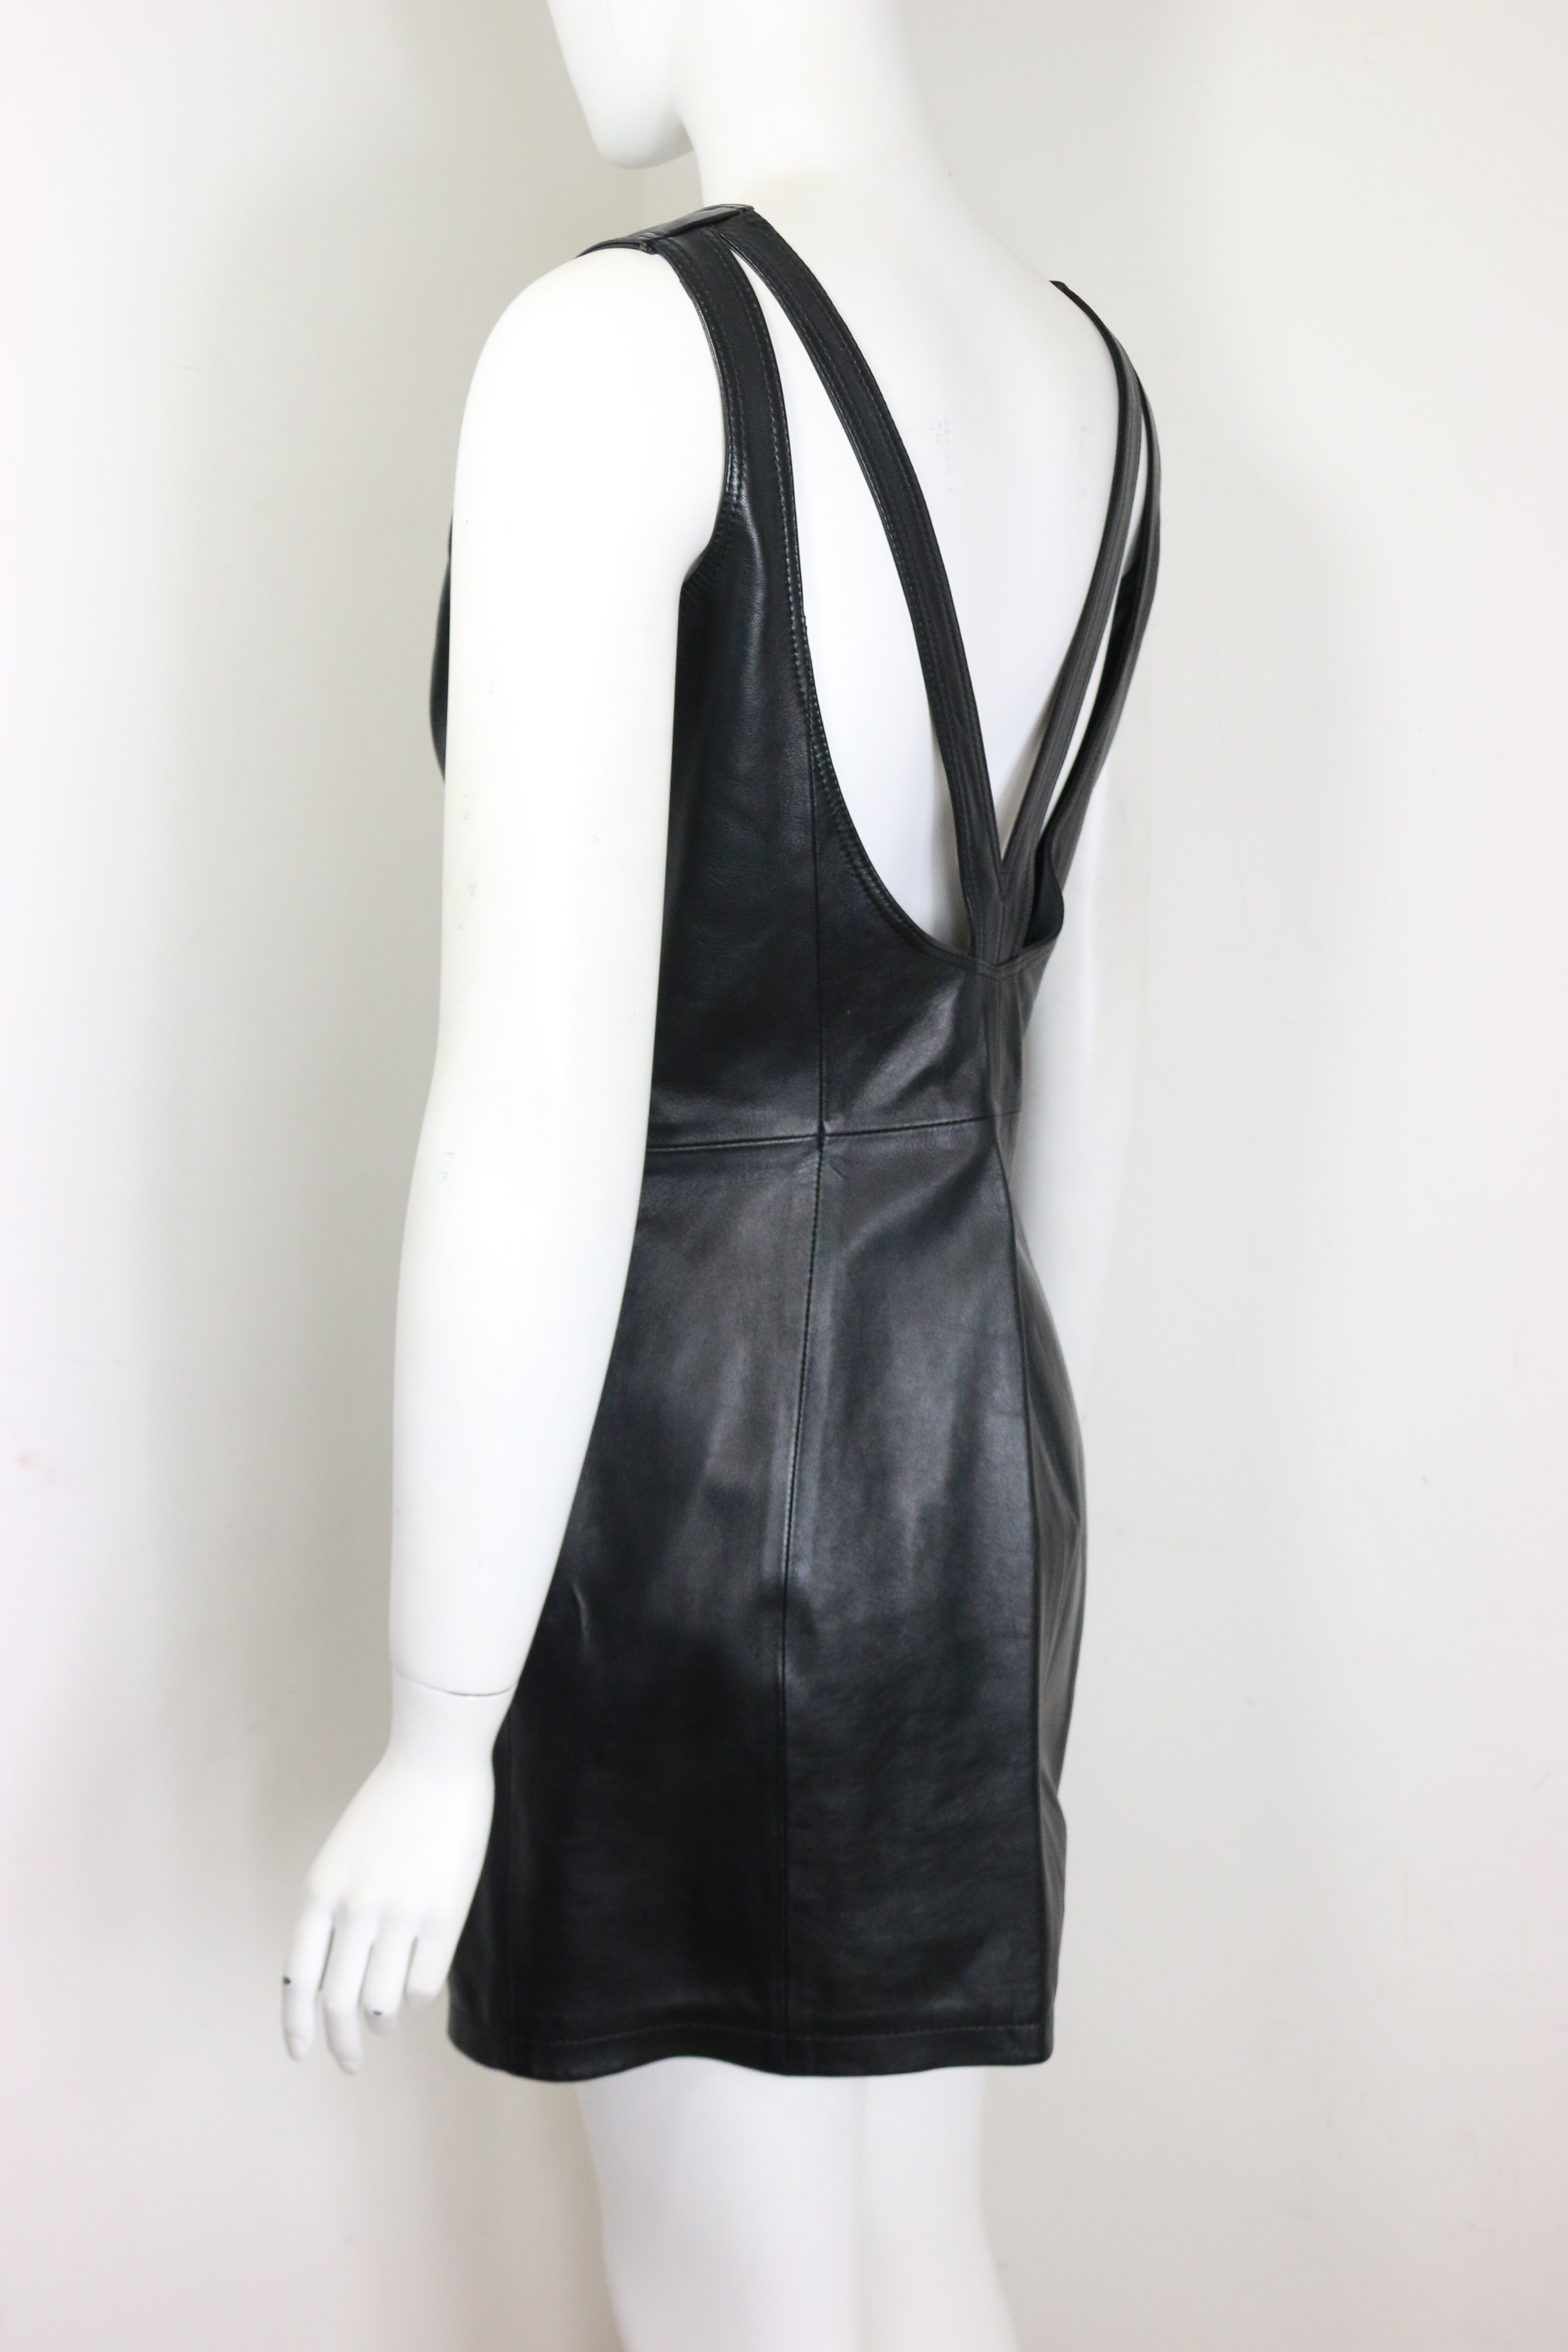 b74027ecdab Gianni Versace Iconic Black Leather Back Cut Out Dress For Sale at 1stdibs